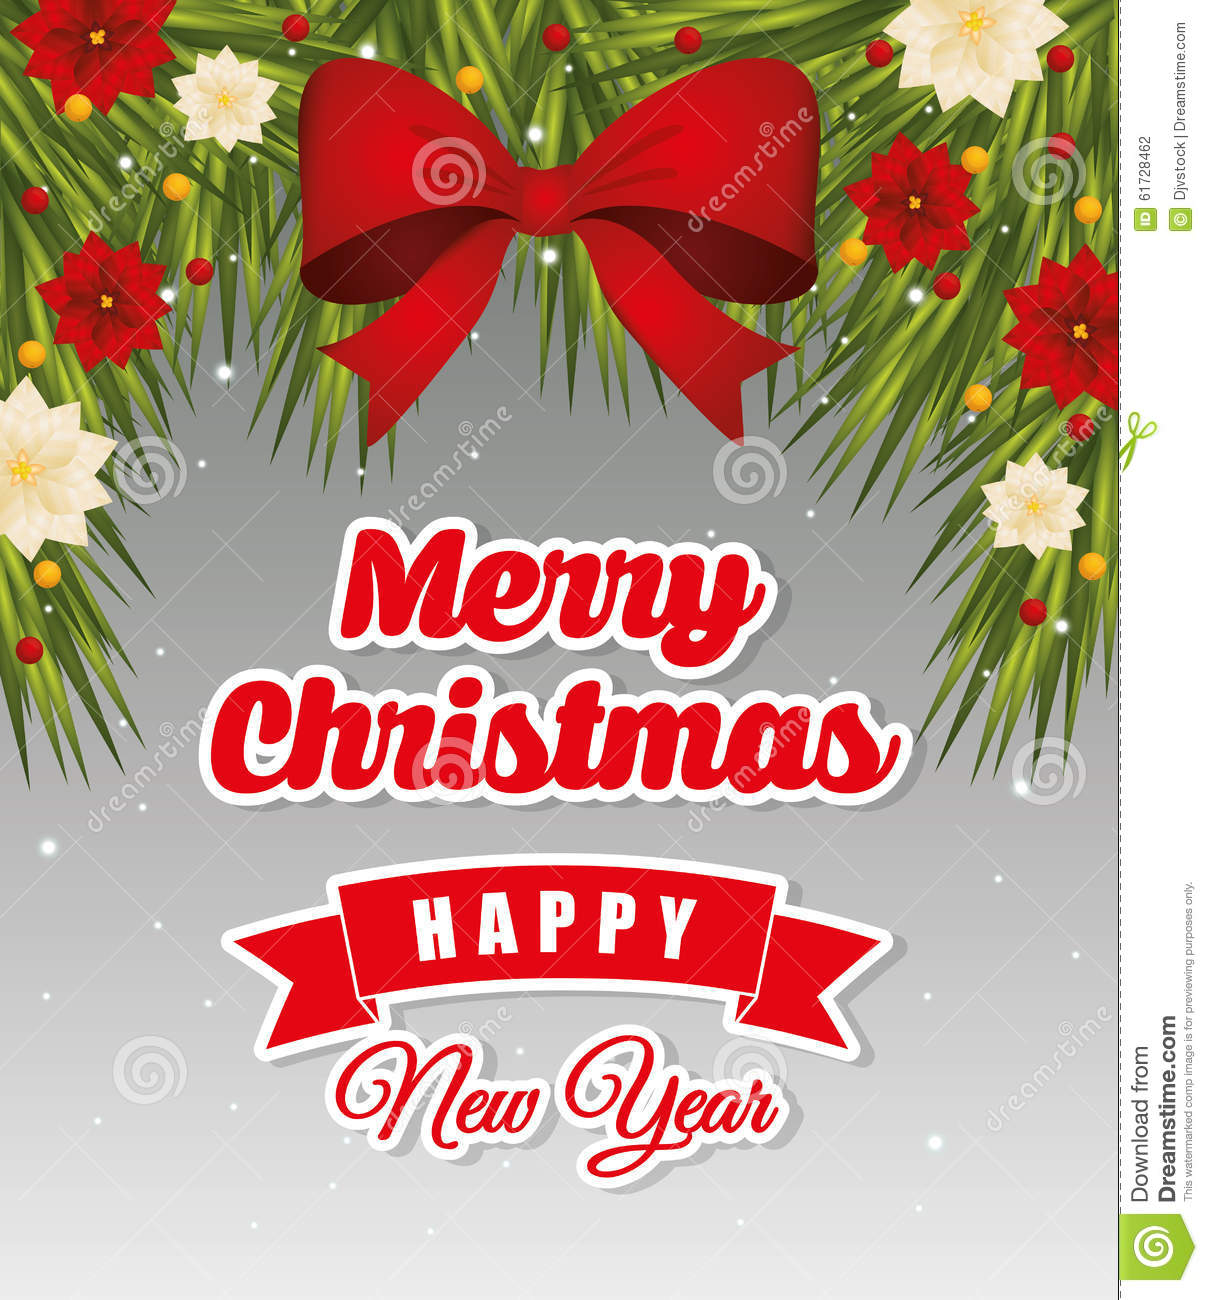 Happy holidays and merry christmas card design stock vector download happy holidays and merry christmas card design stock vector illustration of background paper m4hsunfo